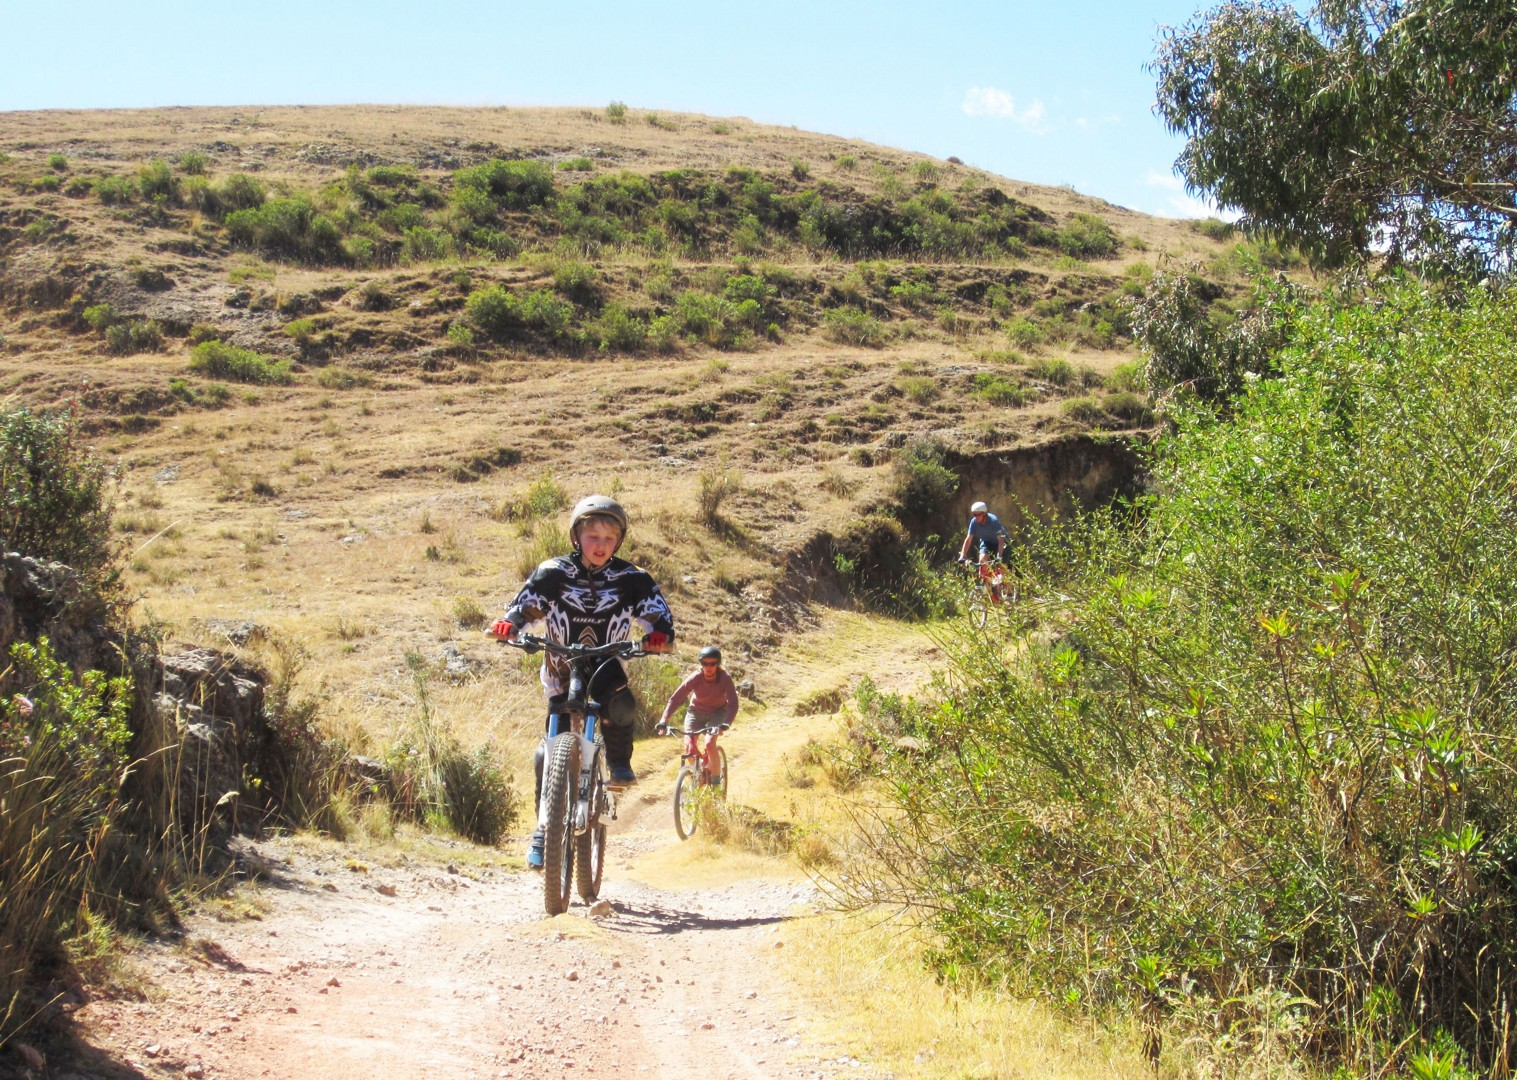 peru-family-cycling-holiday-skedaddle-incan-ruins.JPG - Peru - Andean Adventure - Guided Family Cycling Holiday - Family Cycling